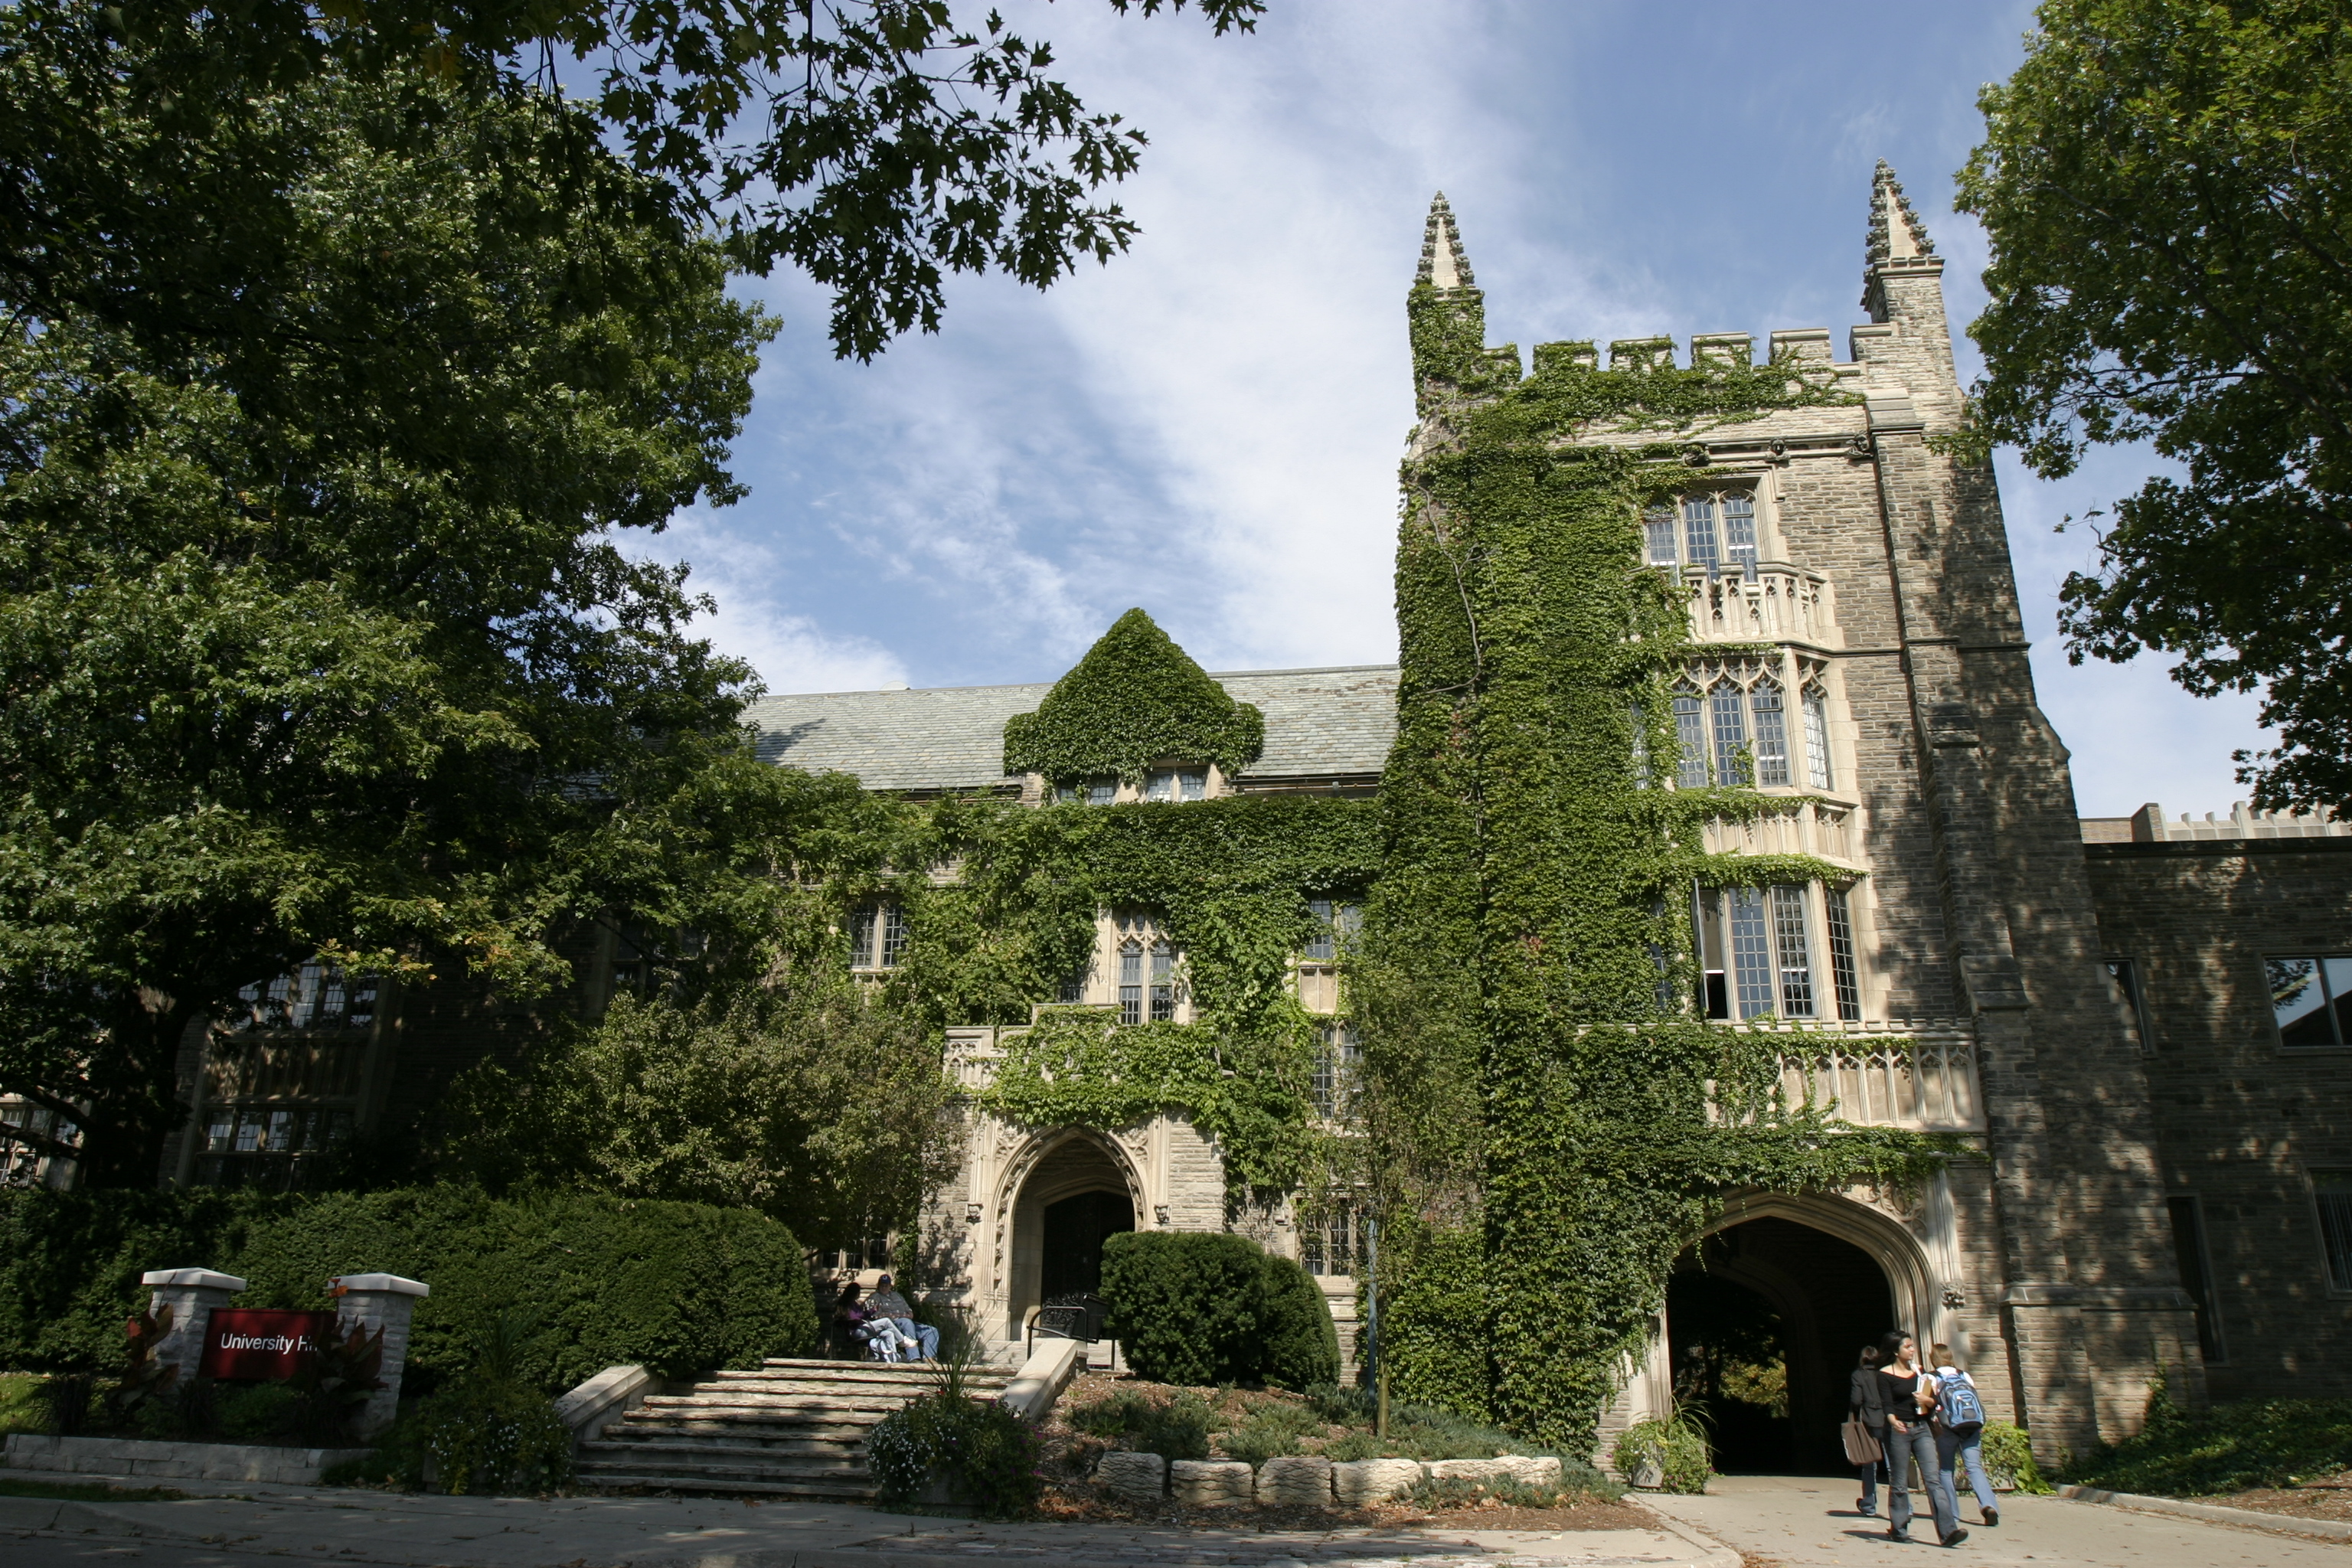 McMaster embroiled in discrimination tribunal case The alumna is accusing the university of human rights violations, racial profiling, intimidation and harassment